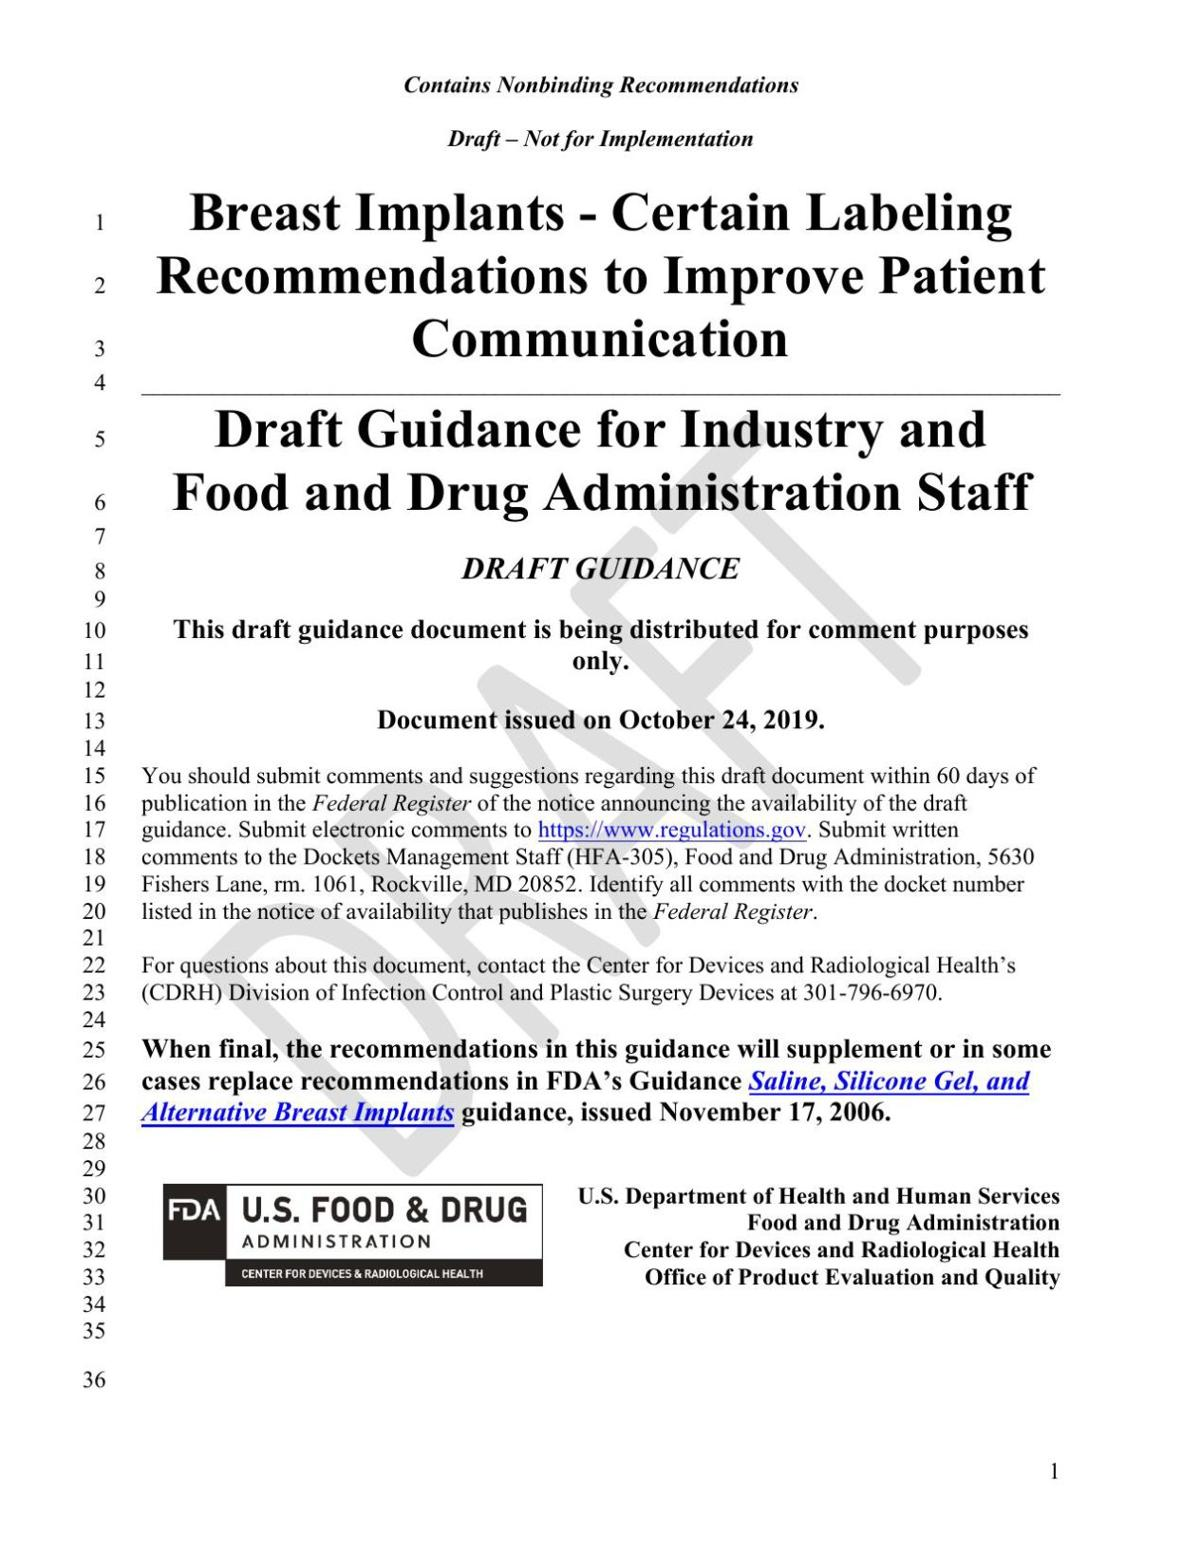 FDA Labeling recommendations draft